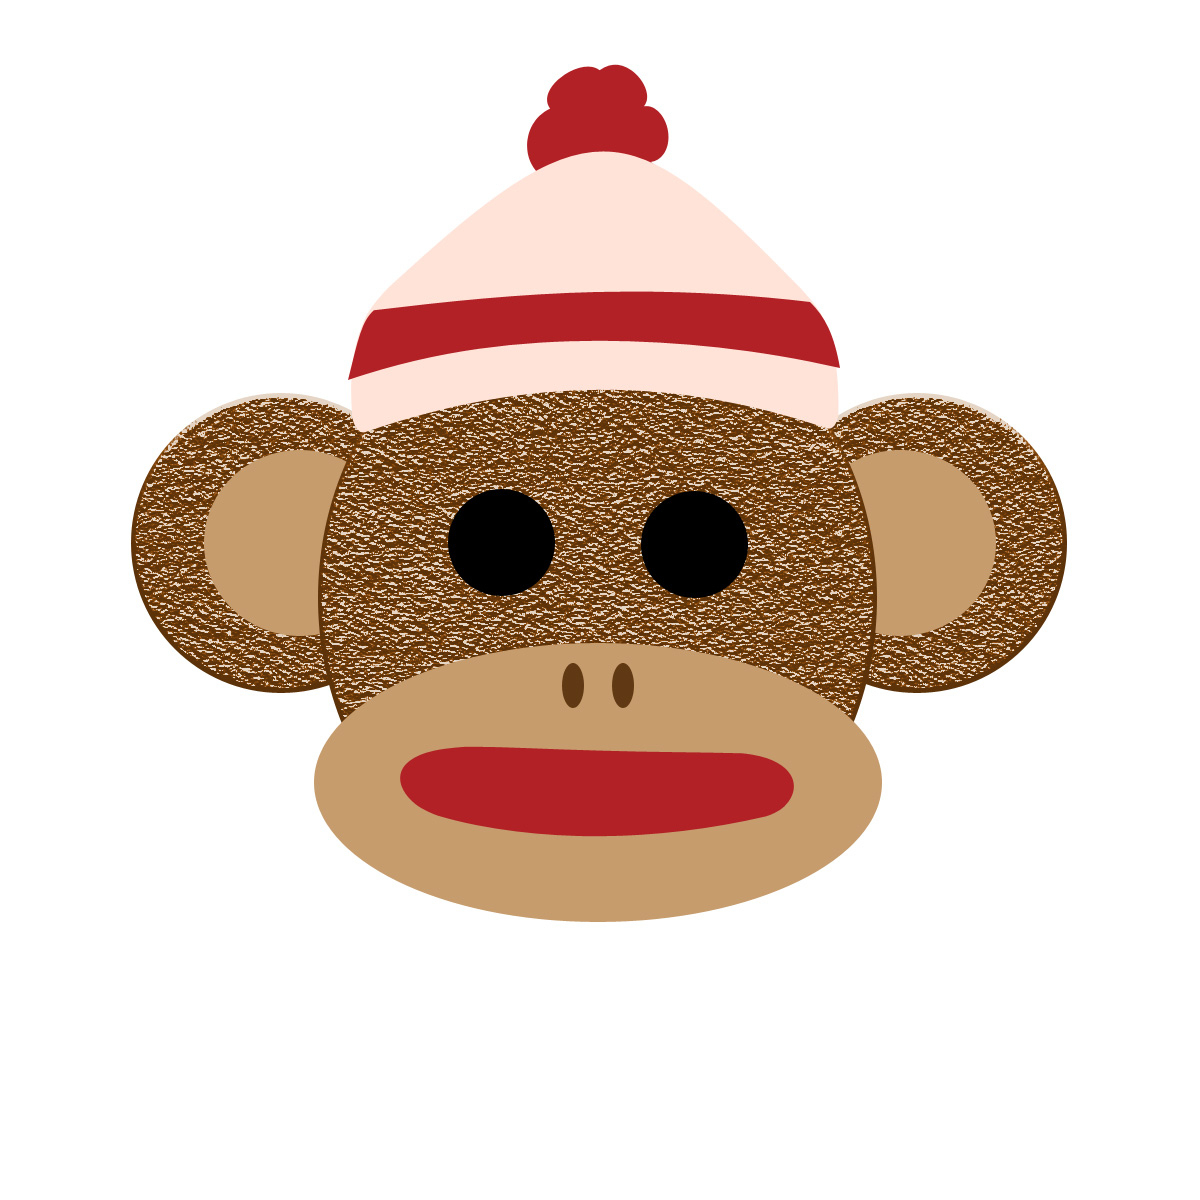 Sock Monkey Clipart Free Collection - Free Printable Sock Monkey Clip Art